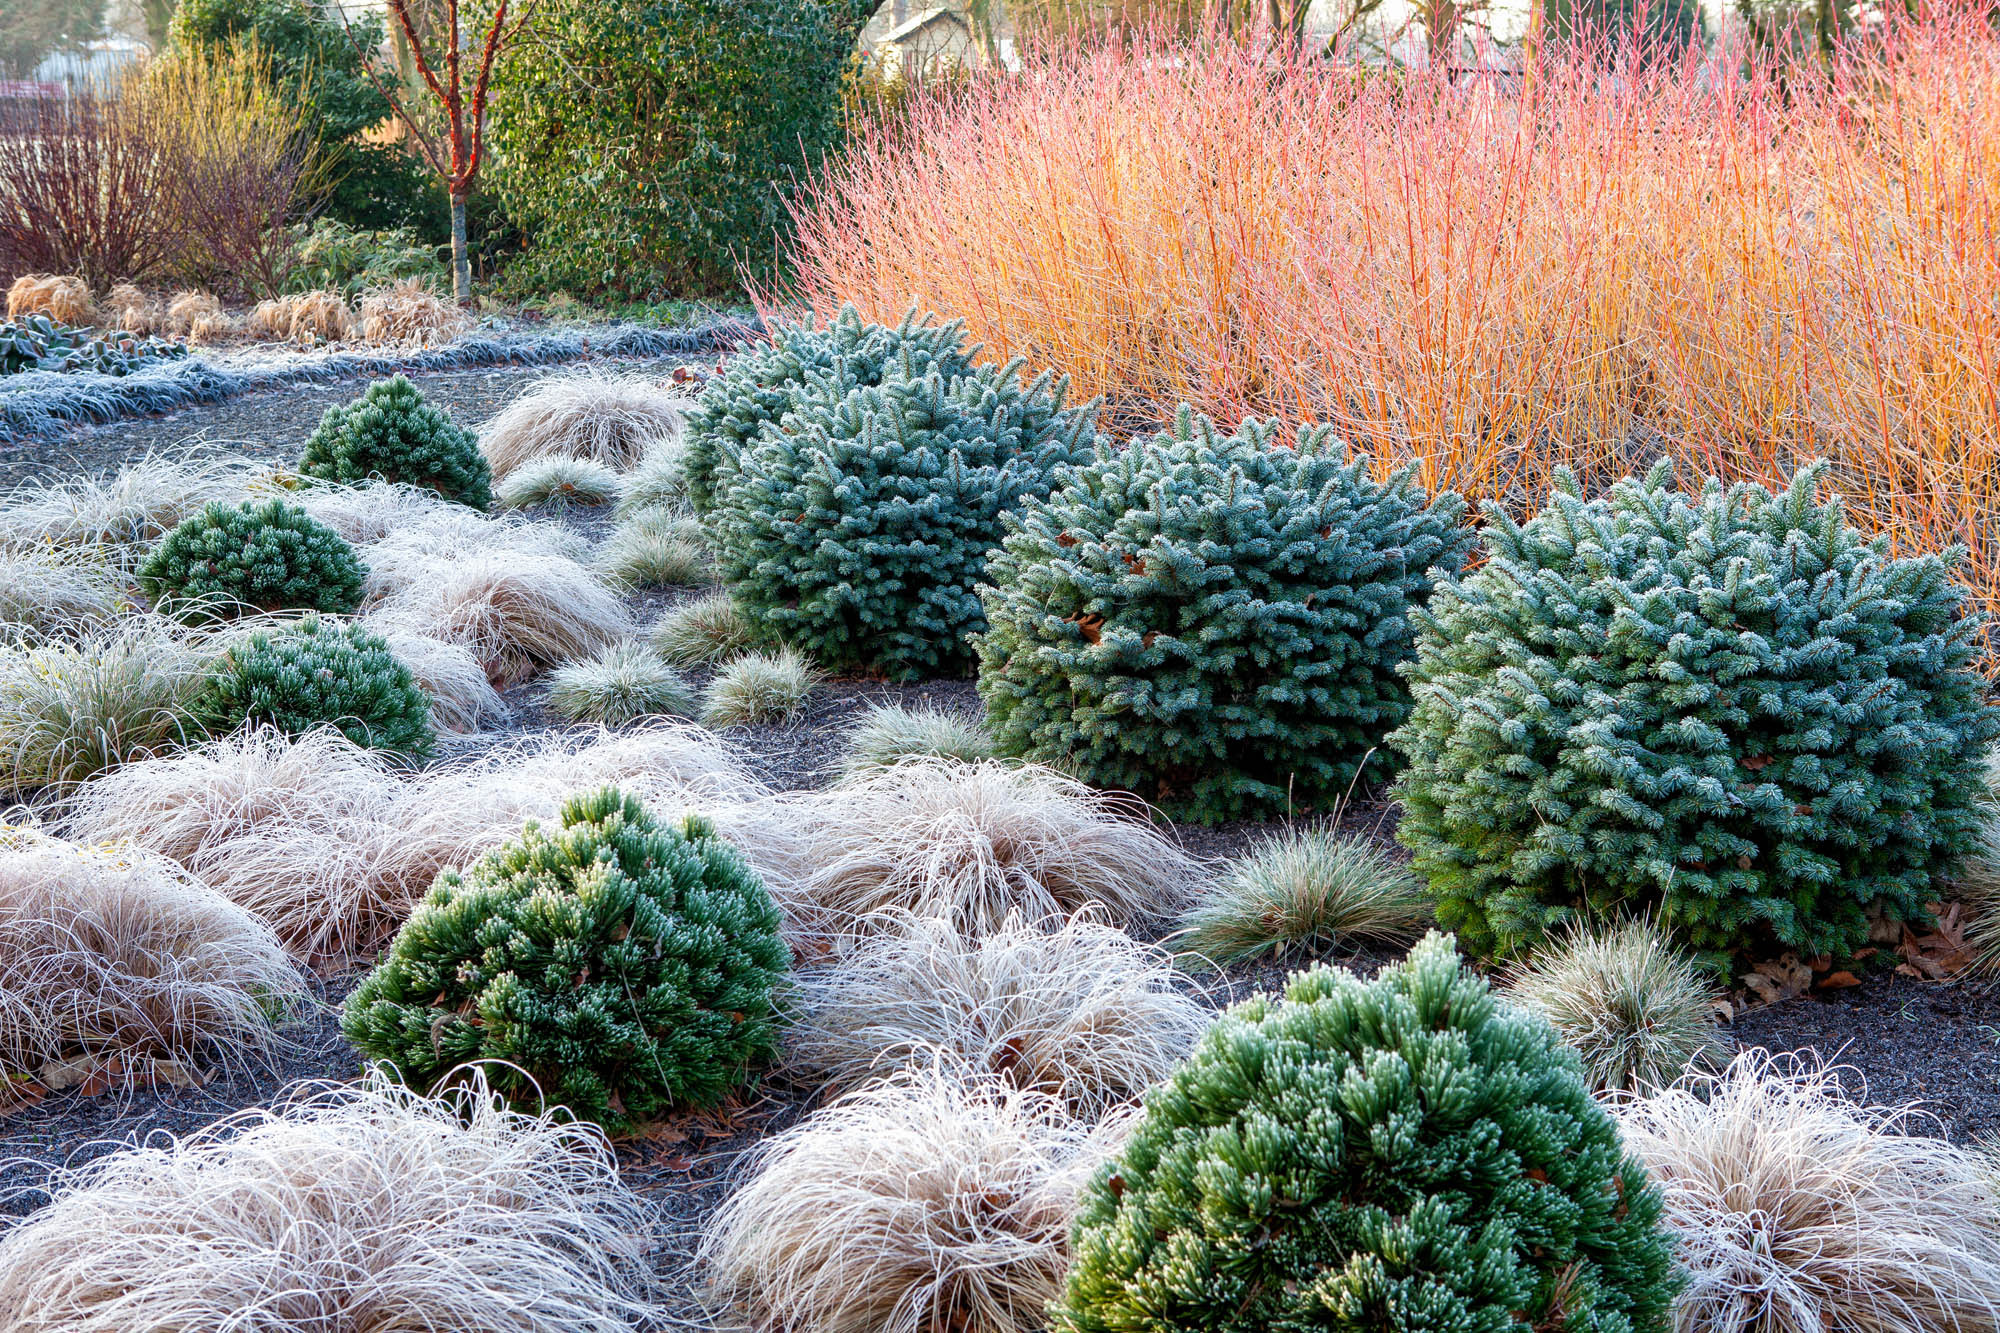 Richard bloom garden photographer 39 s association - Gardening mistakes maintaining garden winter ...